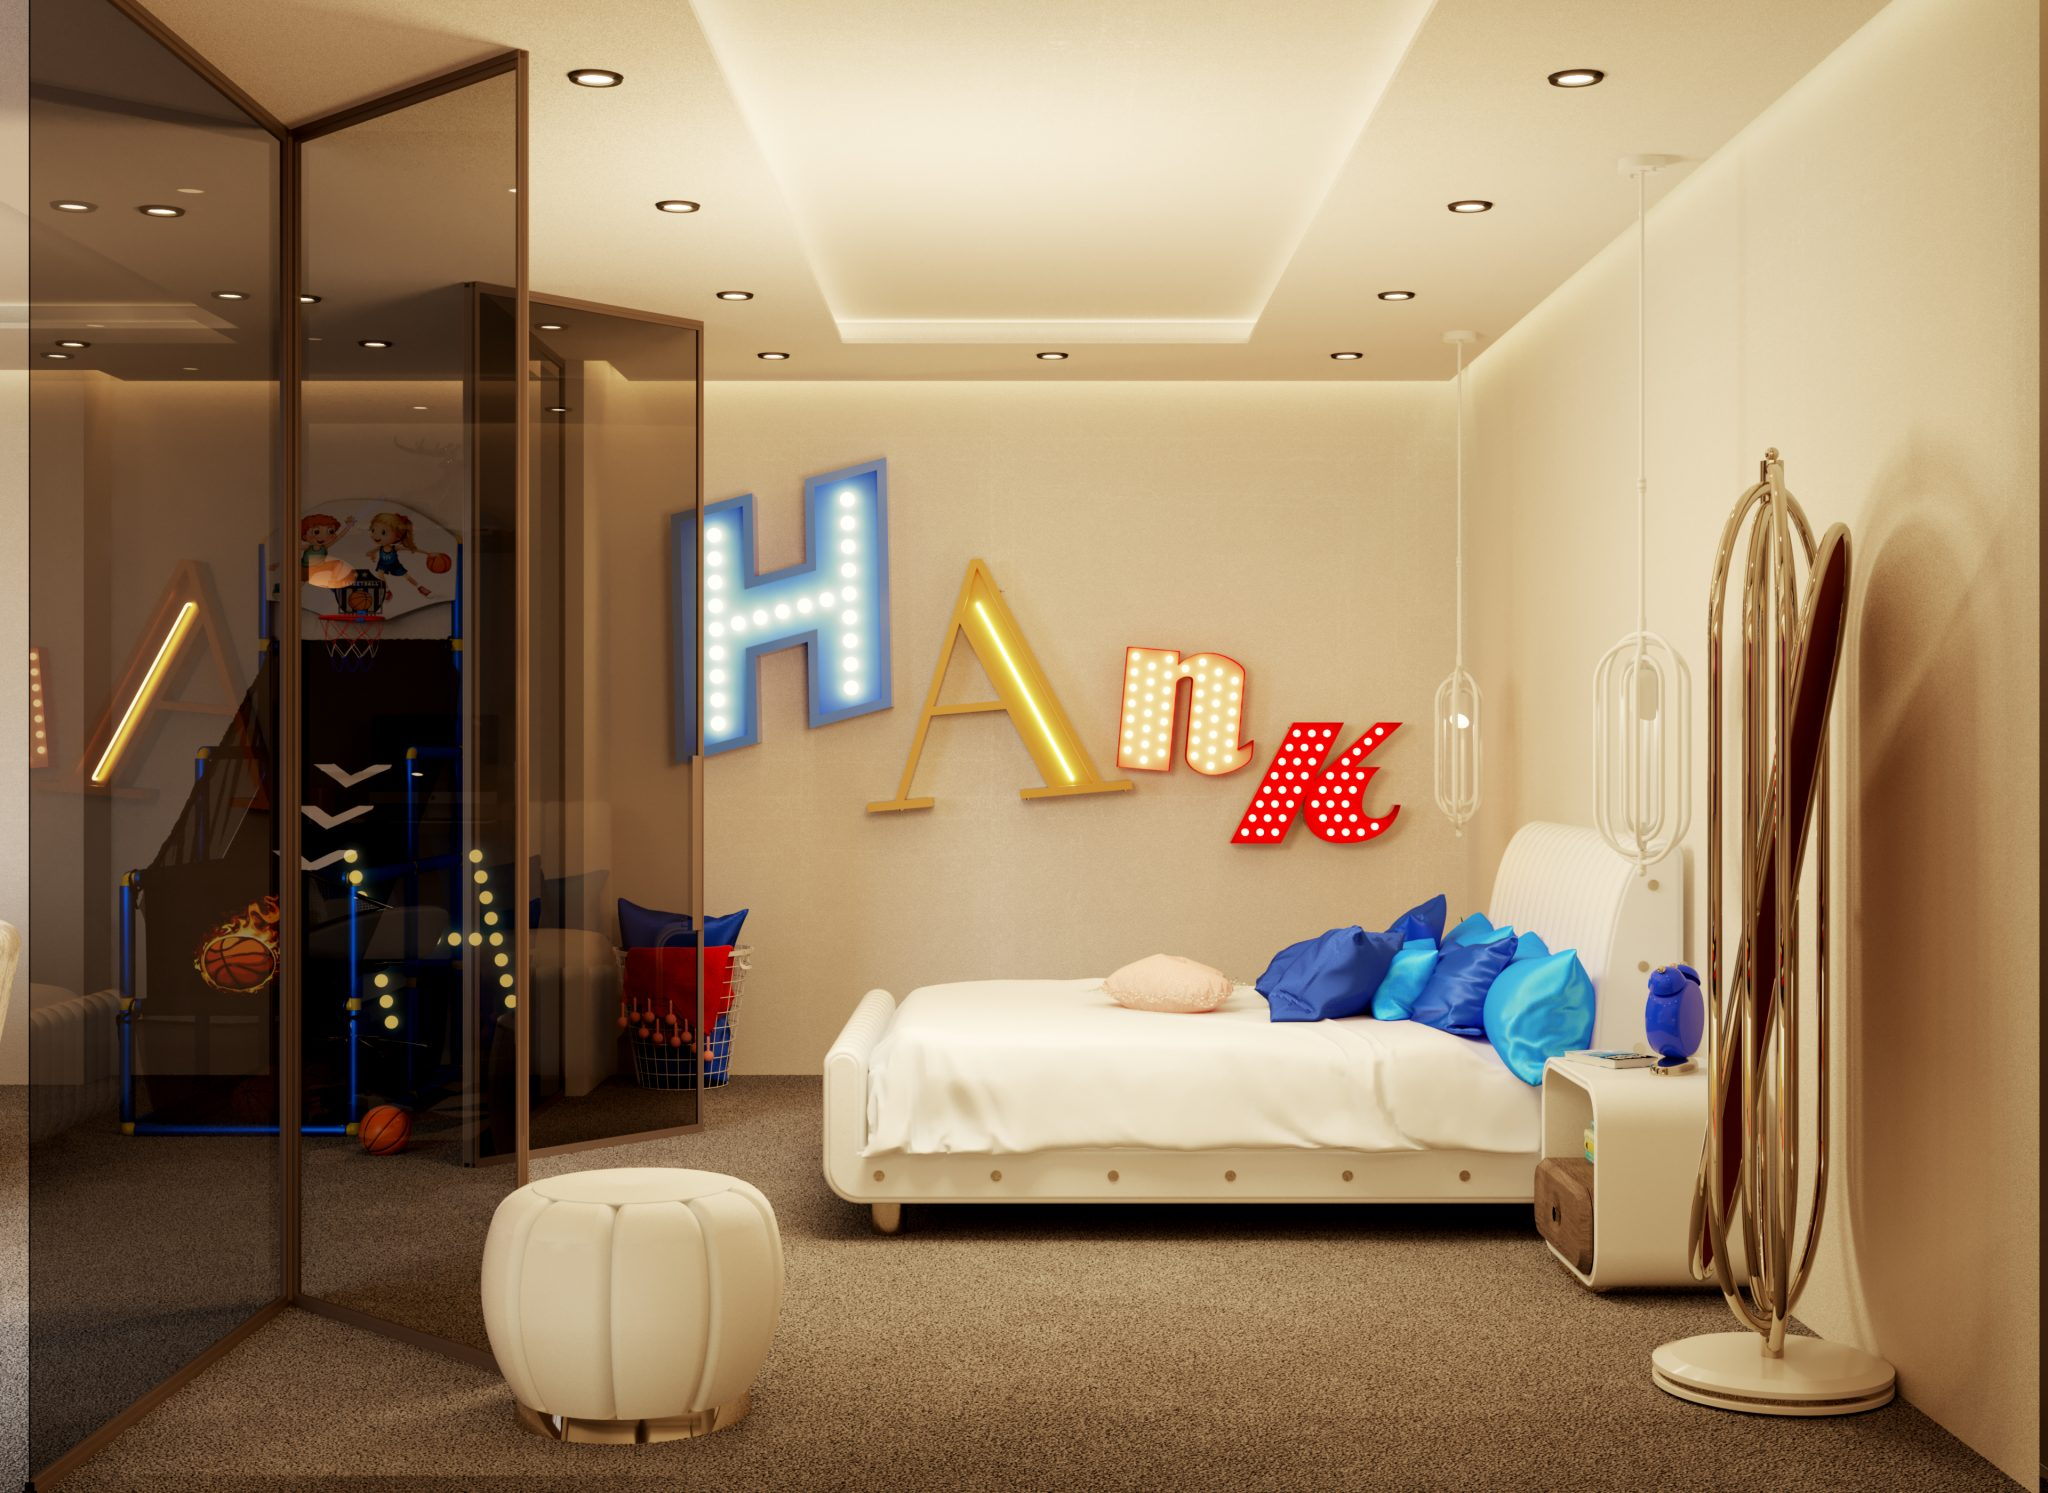 Exclusive Child's Bedroom Decorated With High-End Lighting